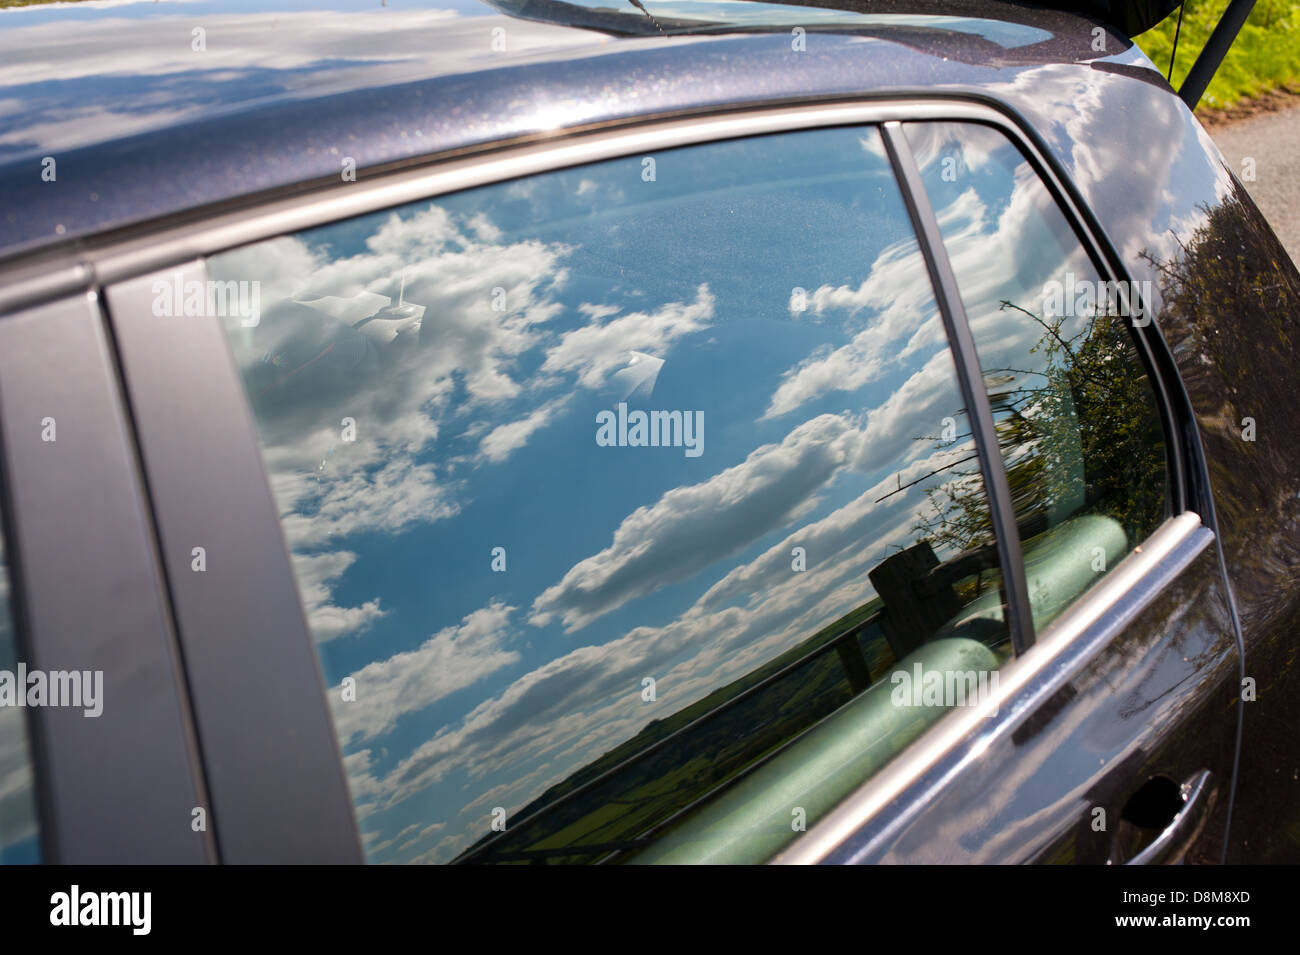 Blue sky and clouds reflected in car window - Stock Image